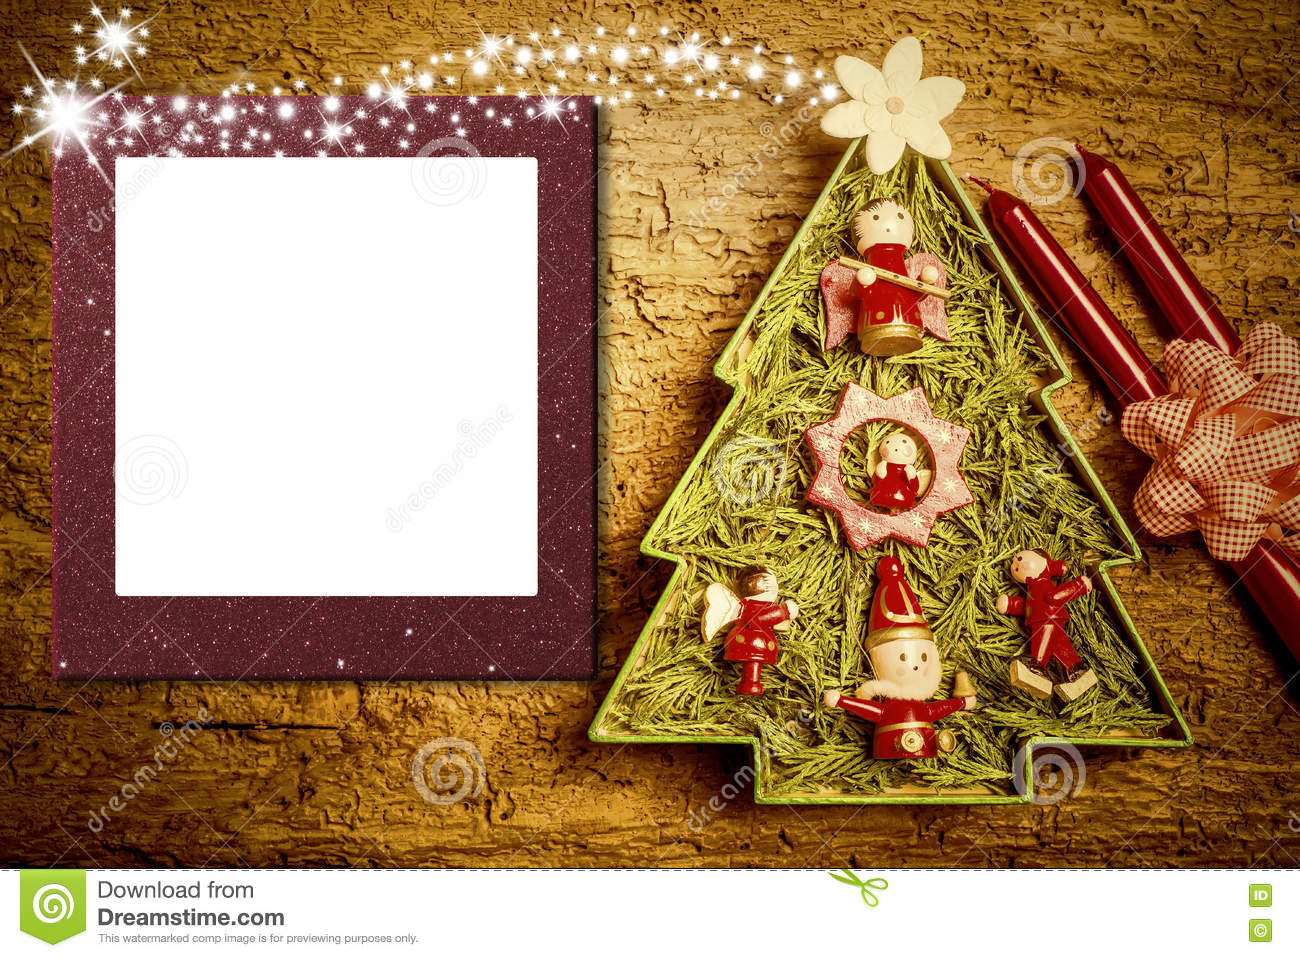 Christmas Photo Frame Cards, Cheerful Tree Stock Photo - Image of ...